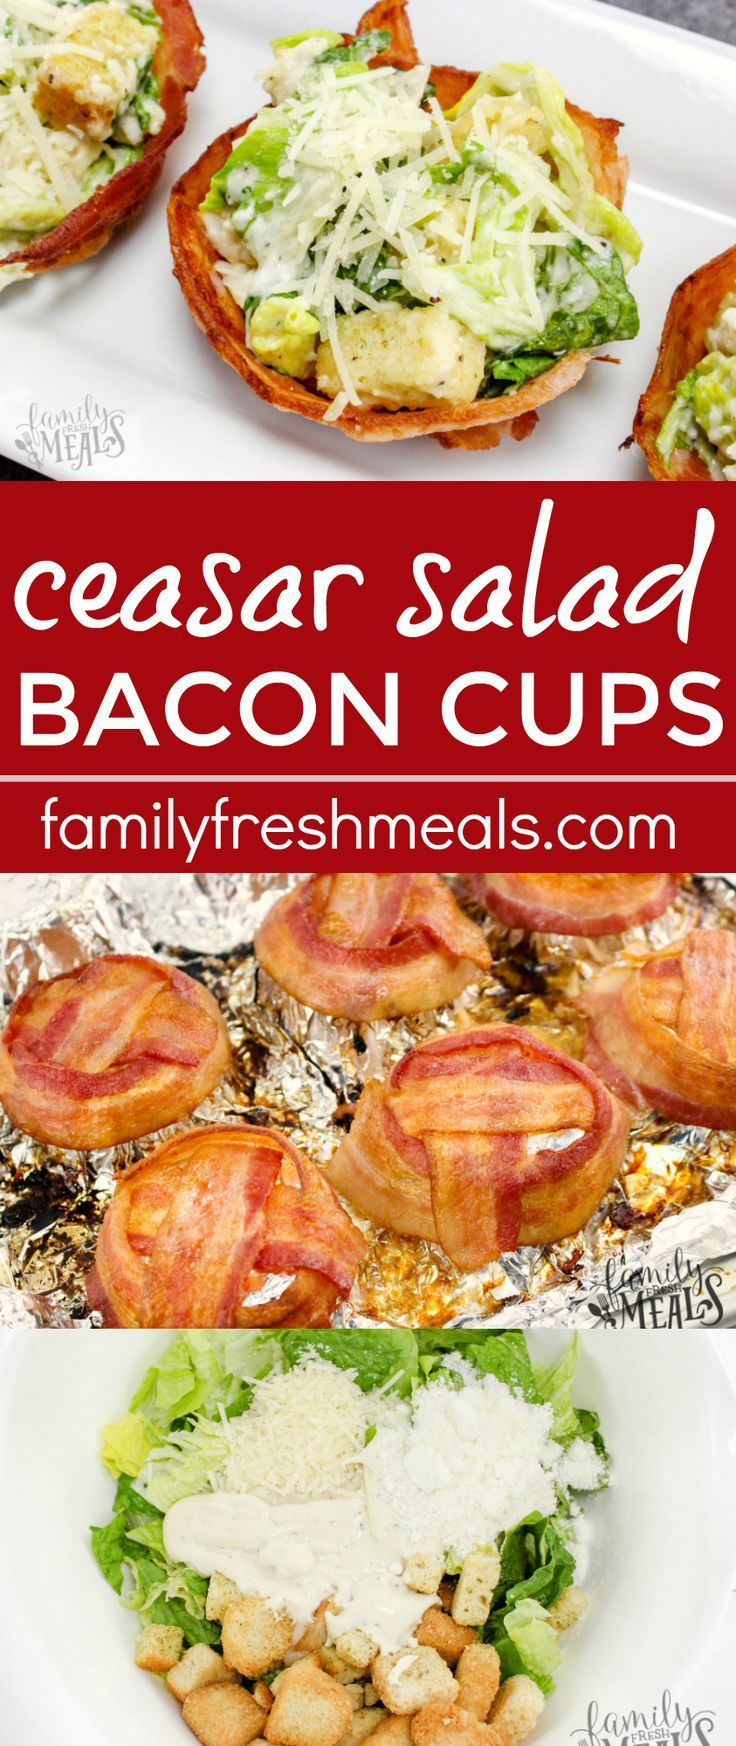 But what if salad could be a one-hand meal? Now it can…with bacon cups! These Caesar Salad Bacon Cups will be your new favorite!